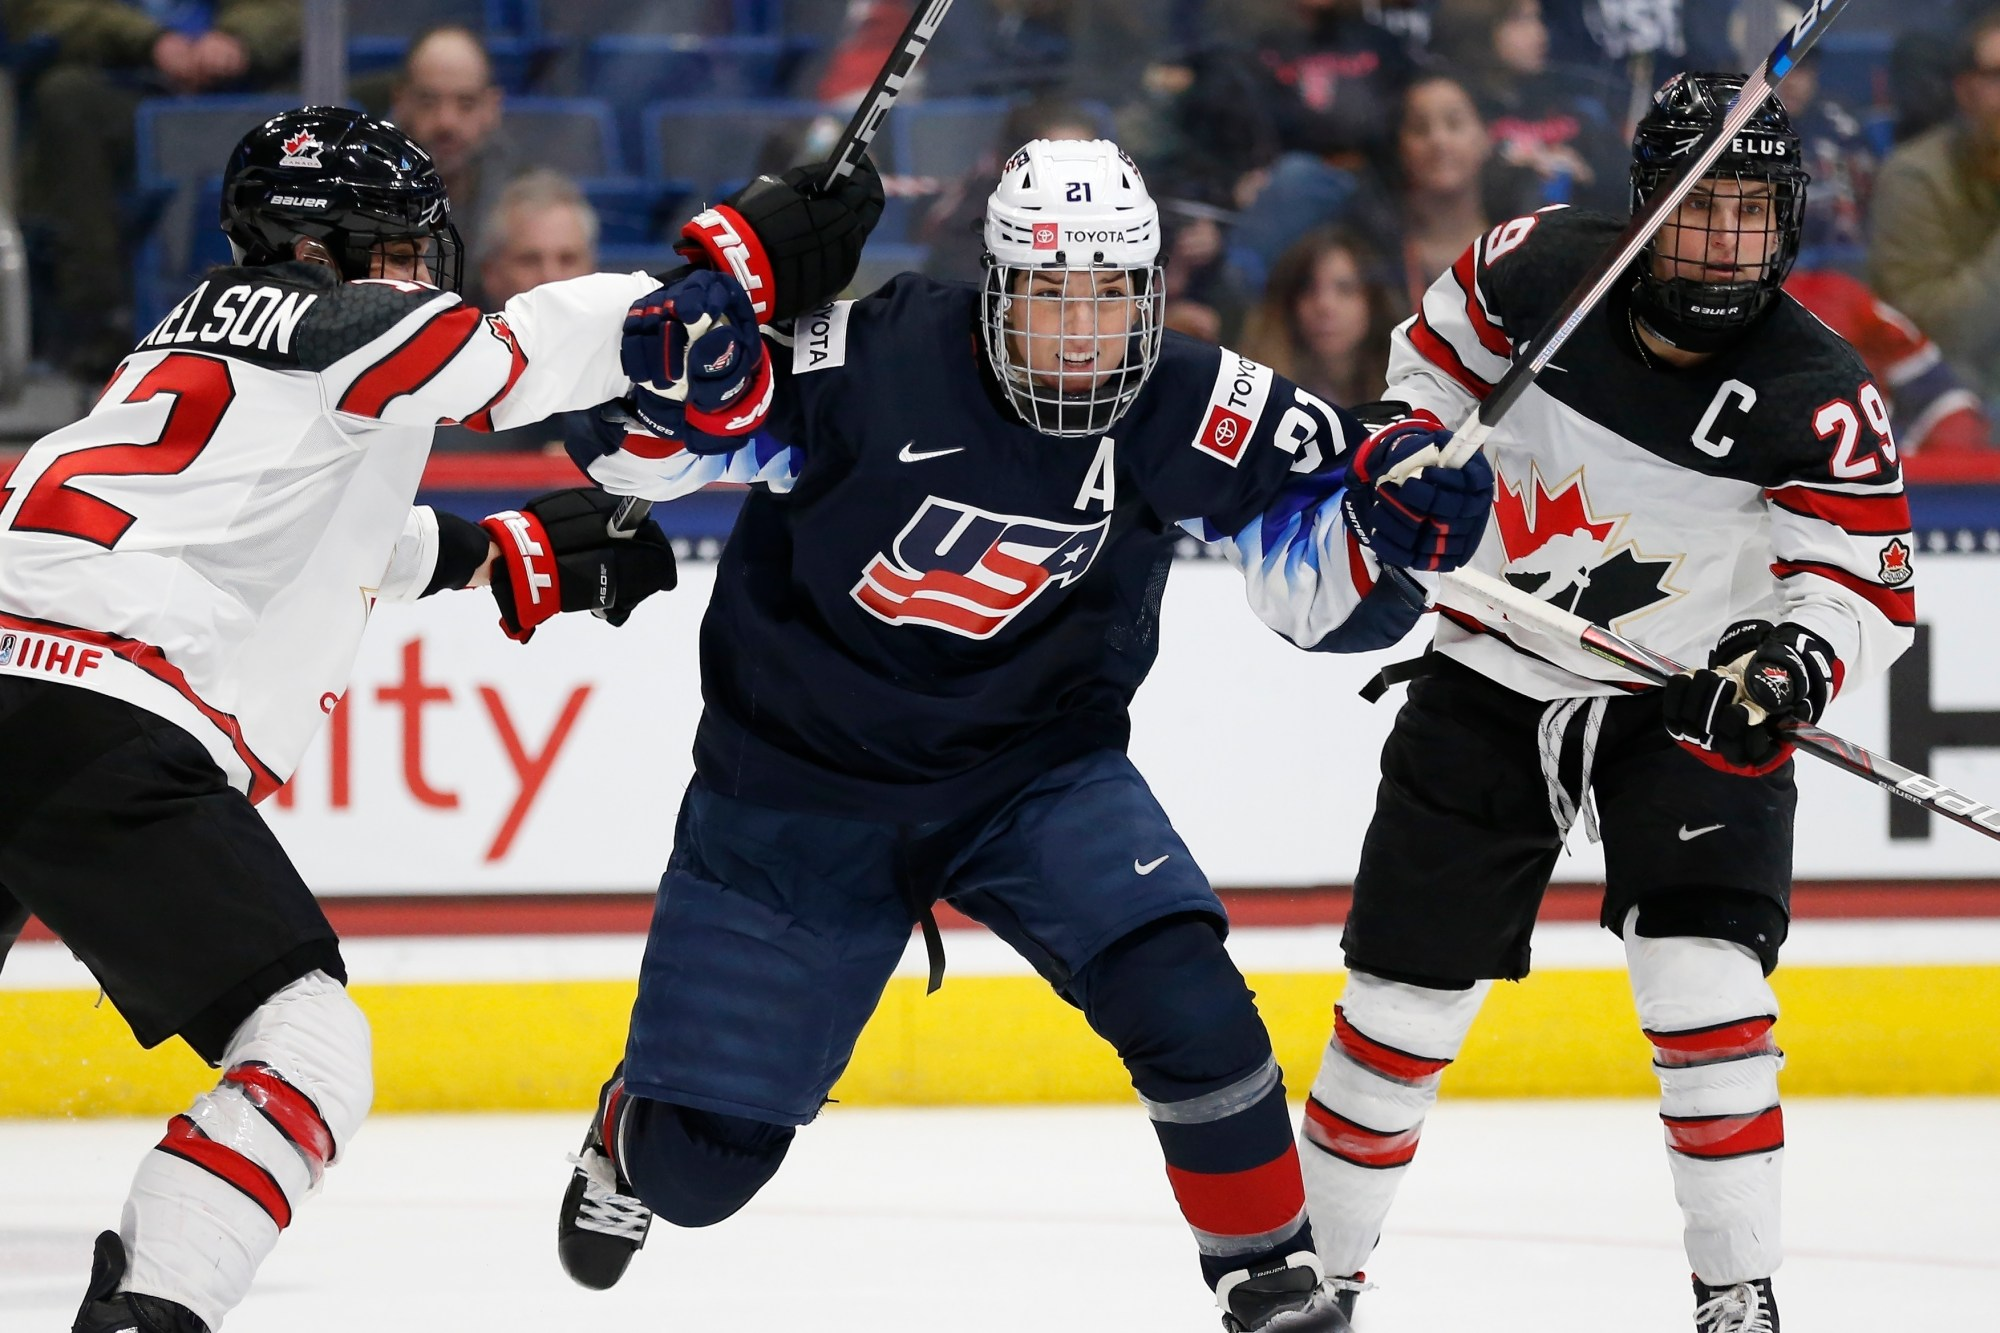 Hilary Knight, Meaghan Mikkelson, Marie-Philip Poulin